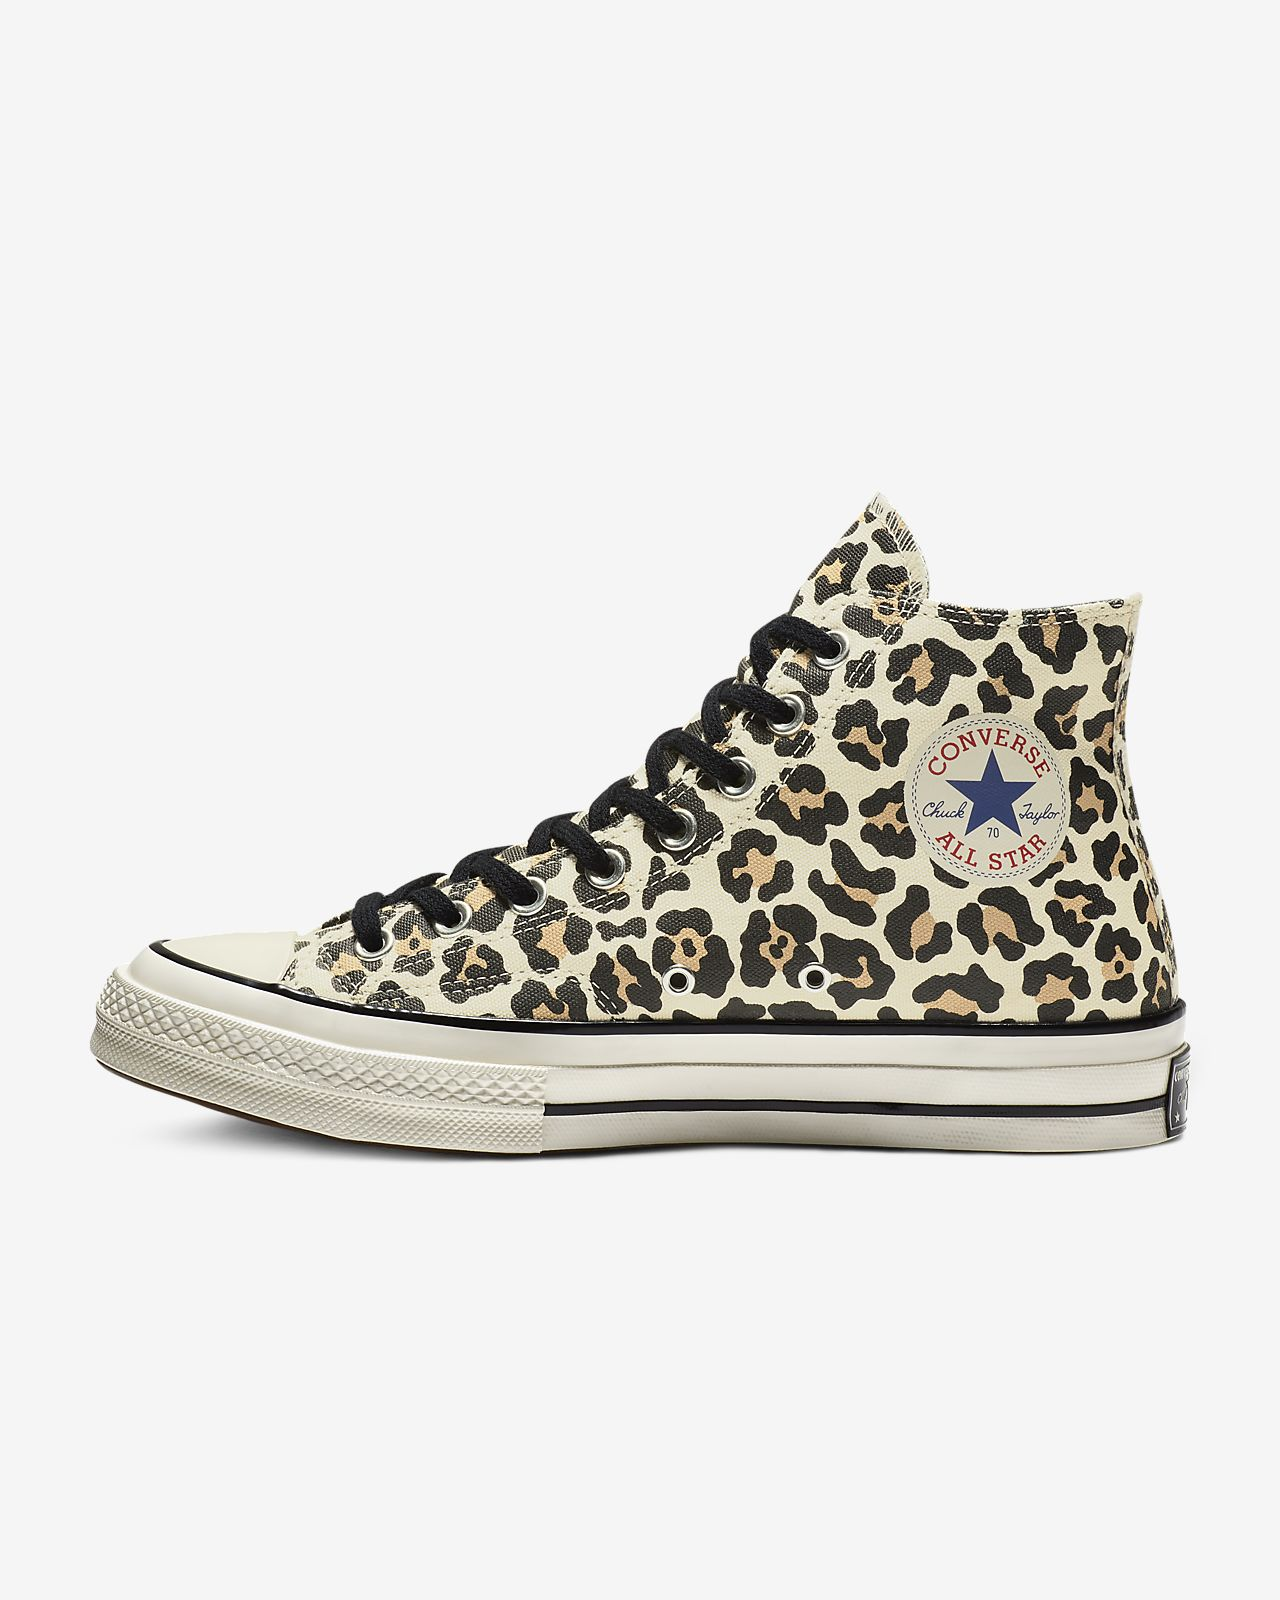 Converse Chuck 70 Print High Top Unisex Shoe